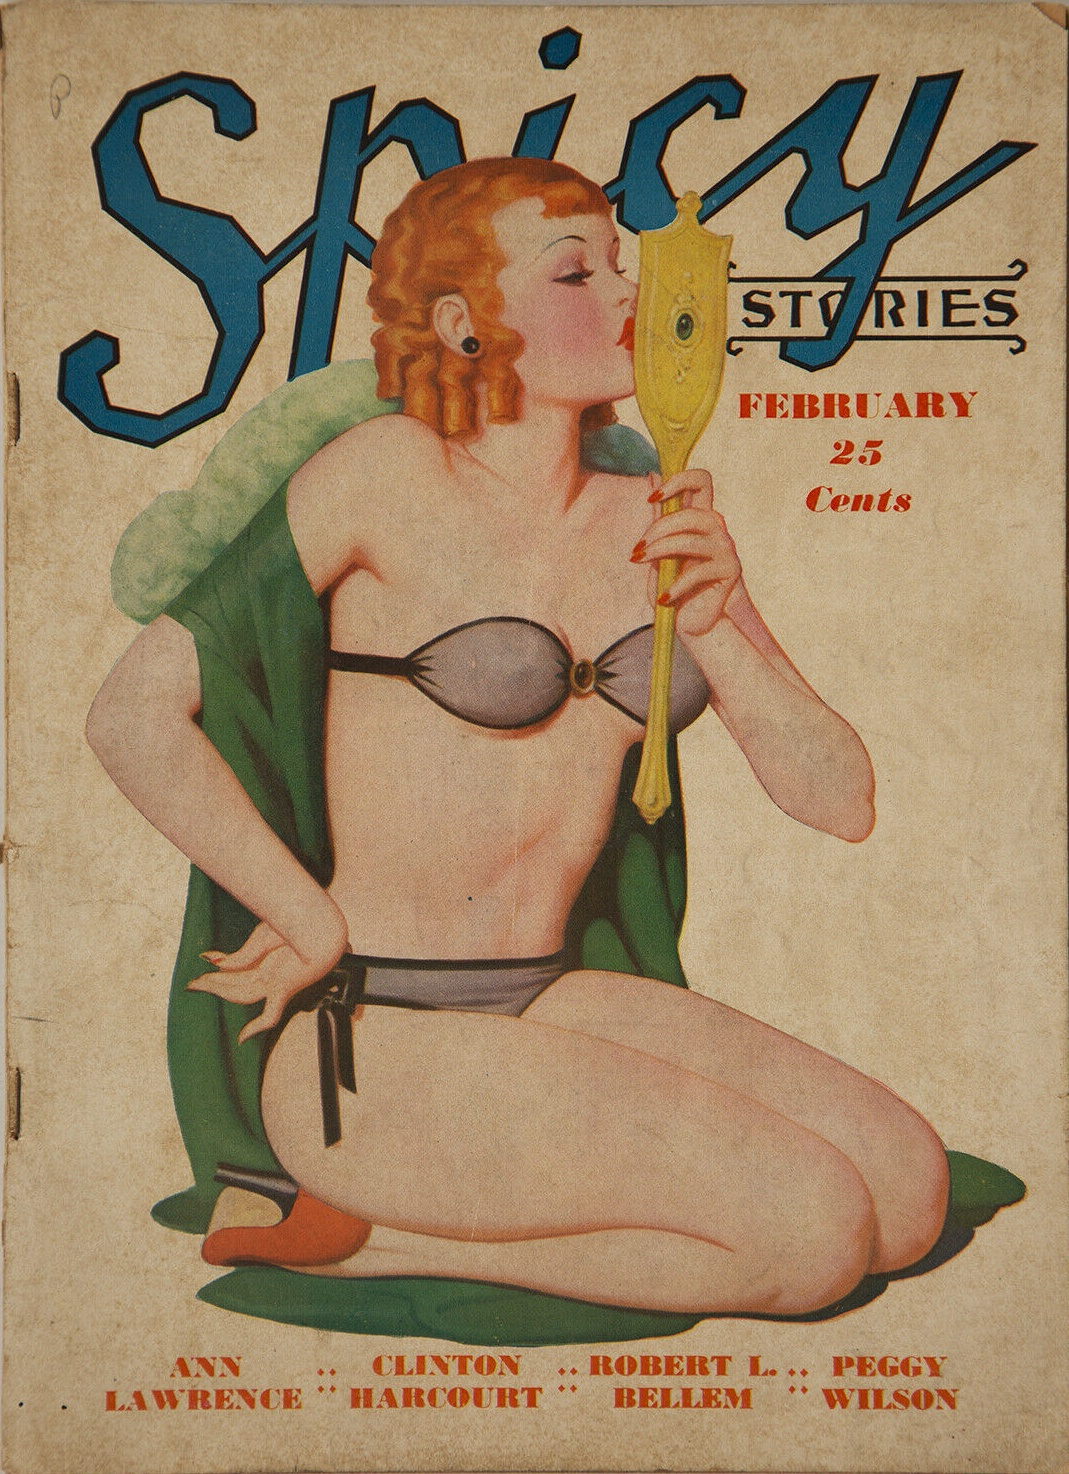 Spicy Stories December 1937 Pulp Enoch Bolles Magazine Fiction